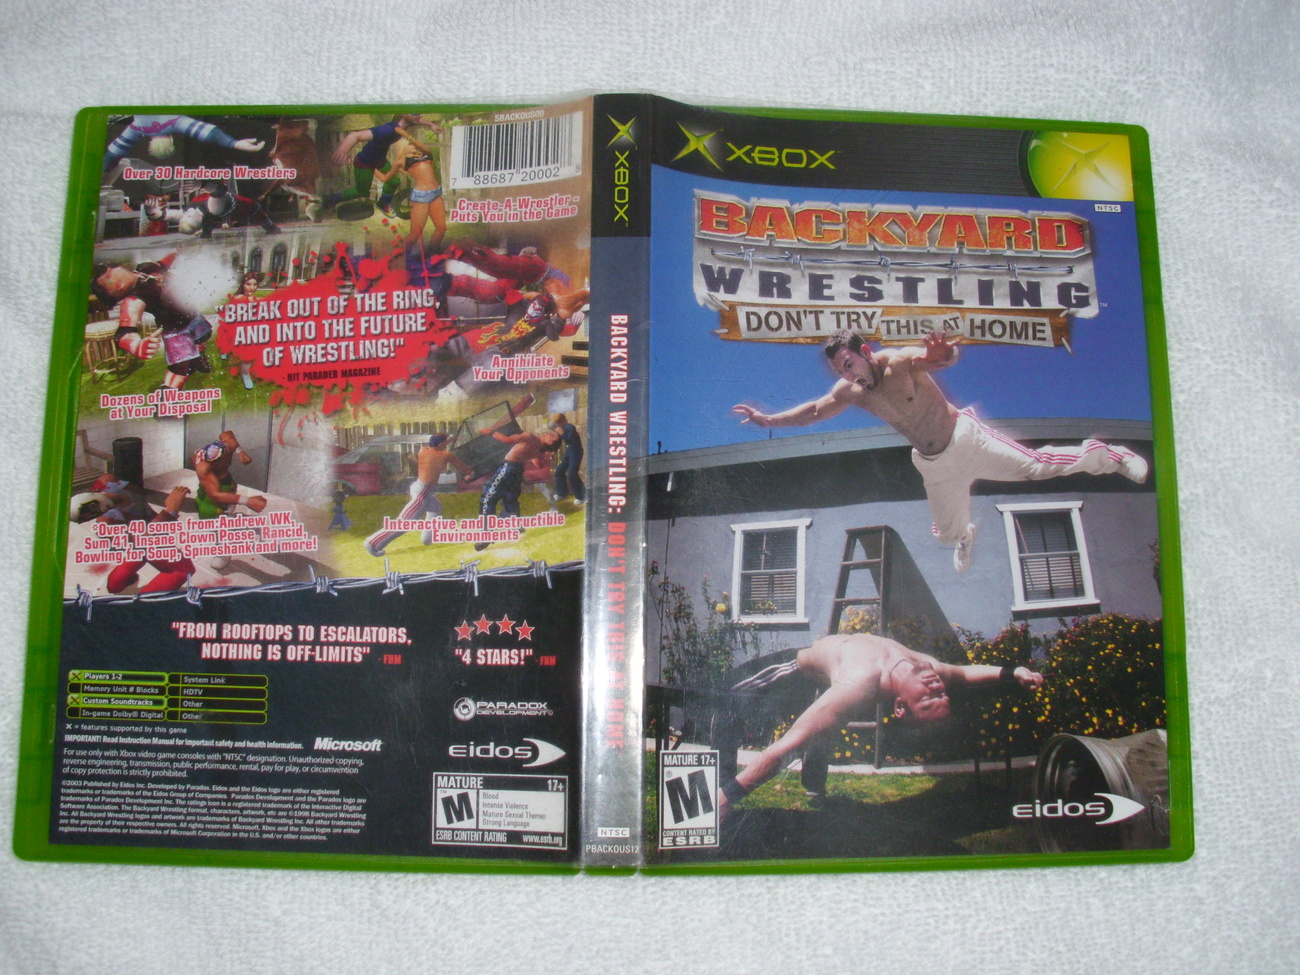 Xbox Backyard Wrestling: Don,t Try This At Home